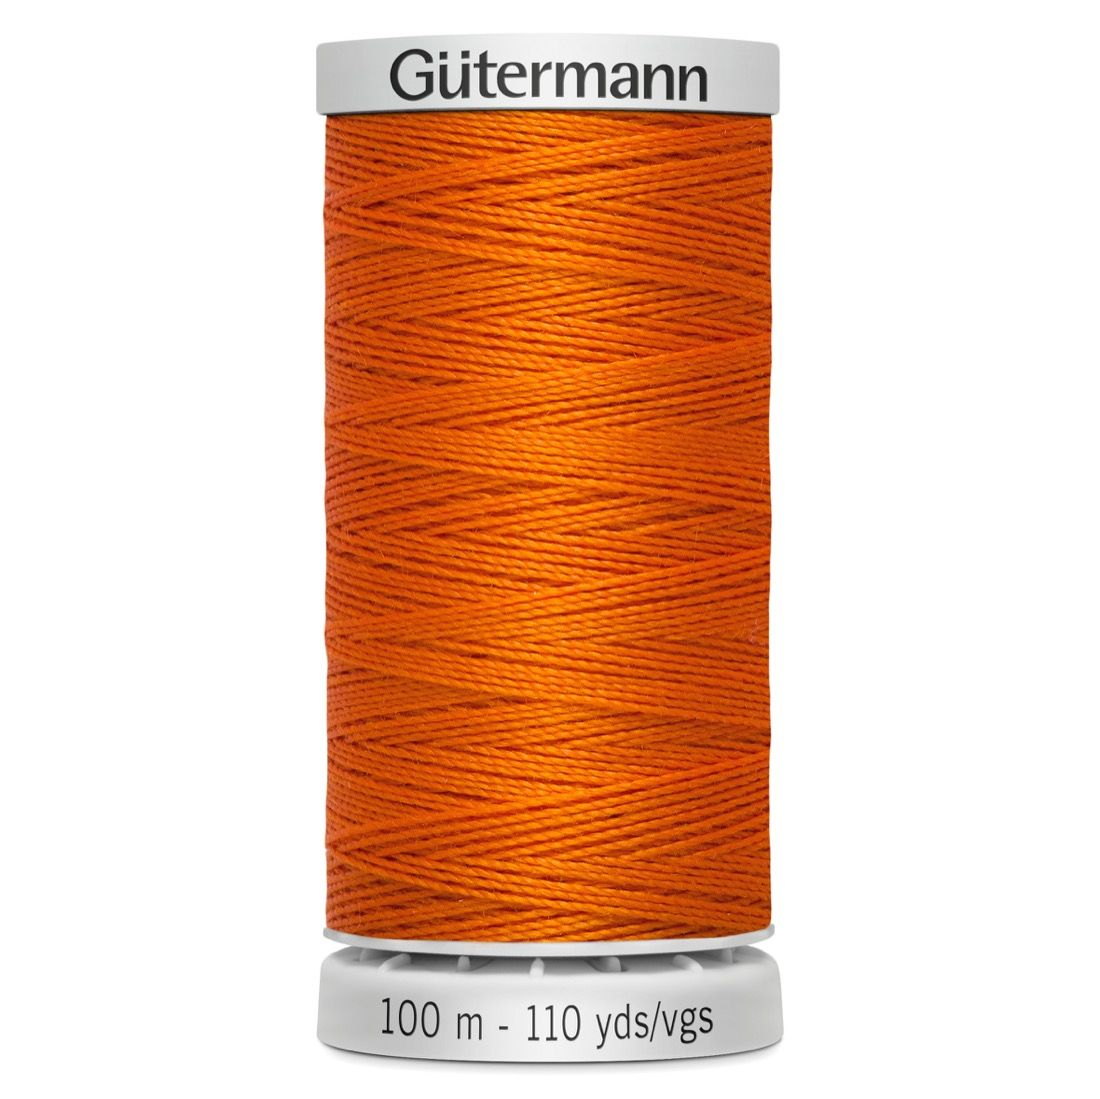 Gutermann Extra Strong Upholstery Thread - 100m - 351